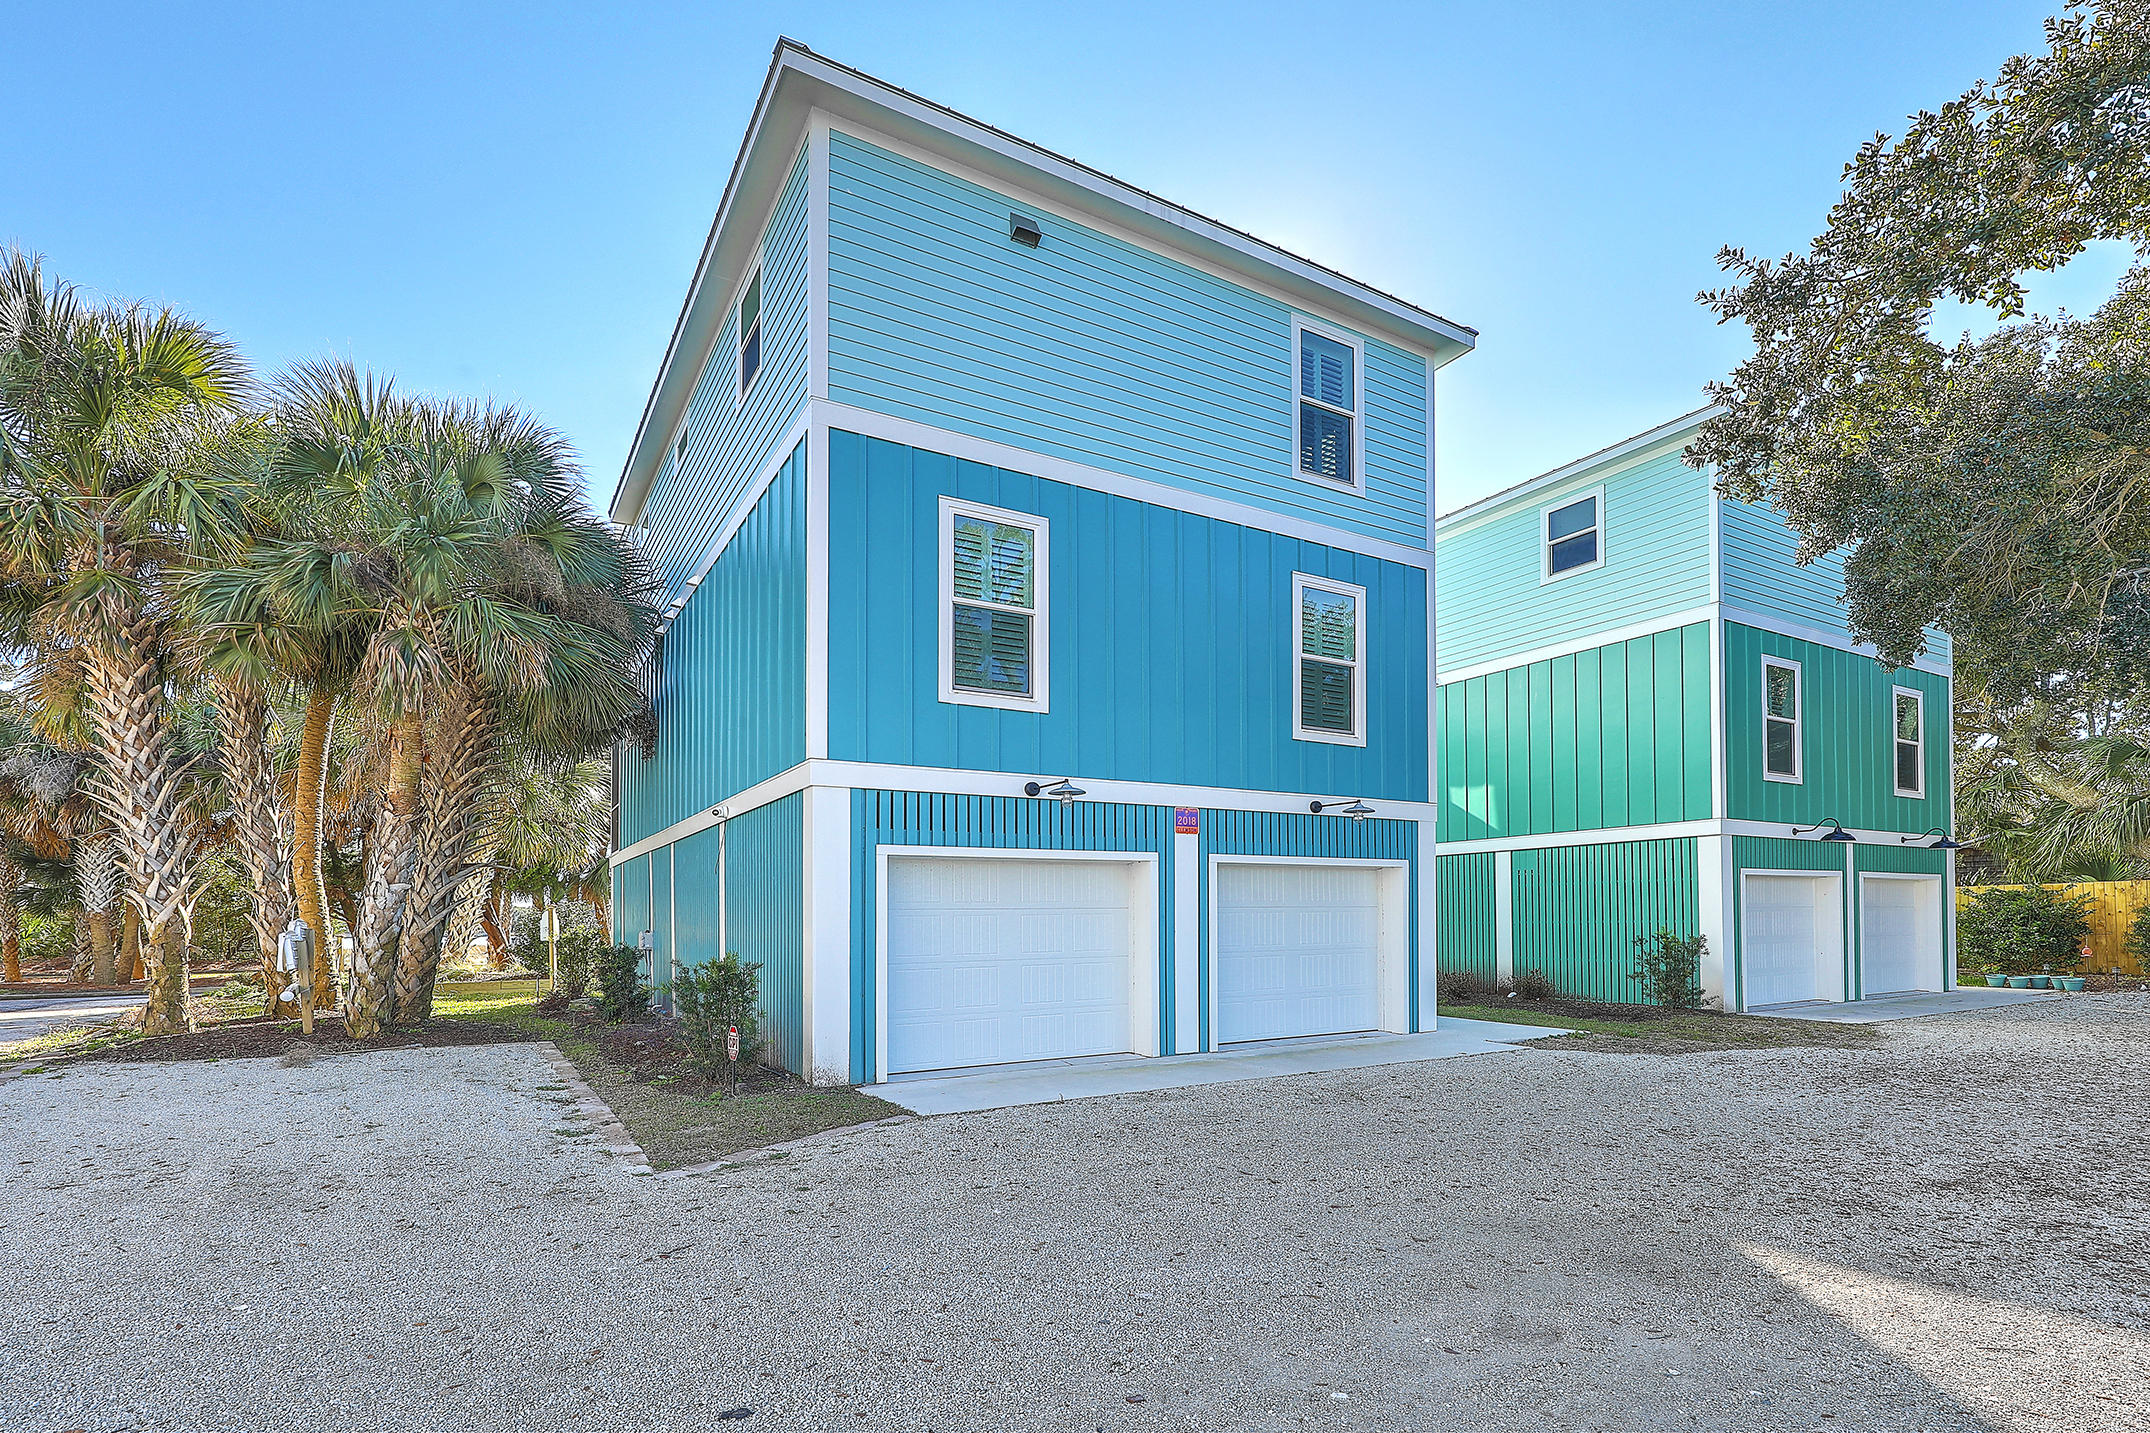 Mariners Cay Homes For Sale - 1002 Mariners Cay, Folly Beach, SC - 4